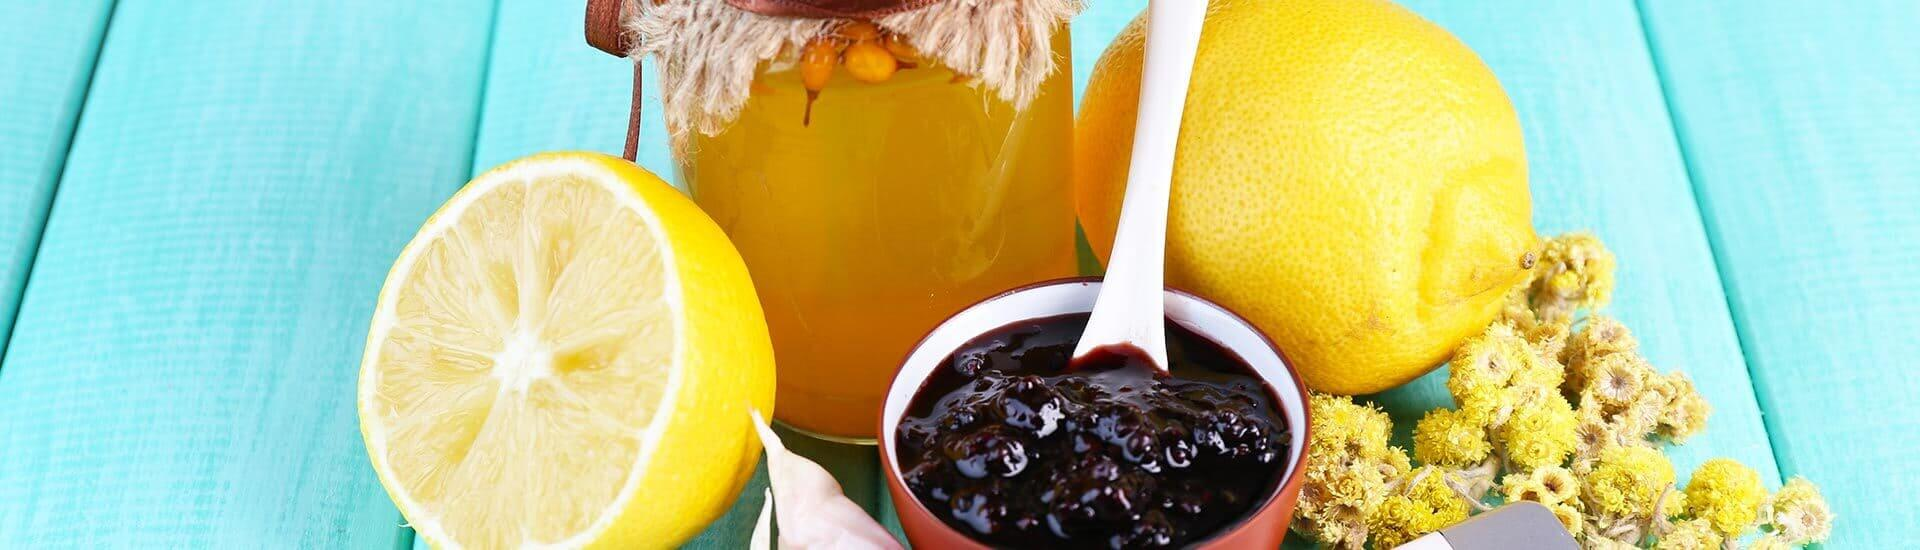 Home Remedies for Teeth